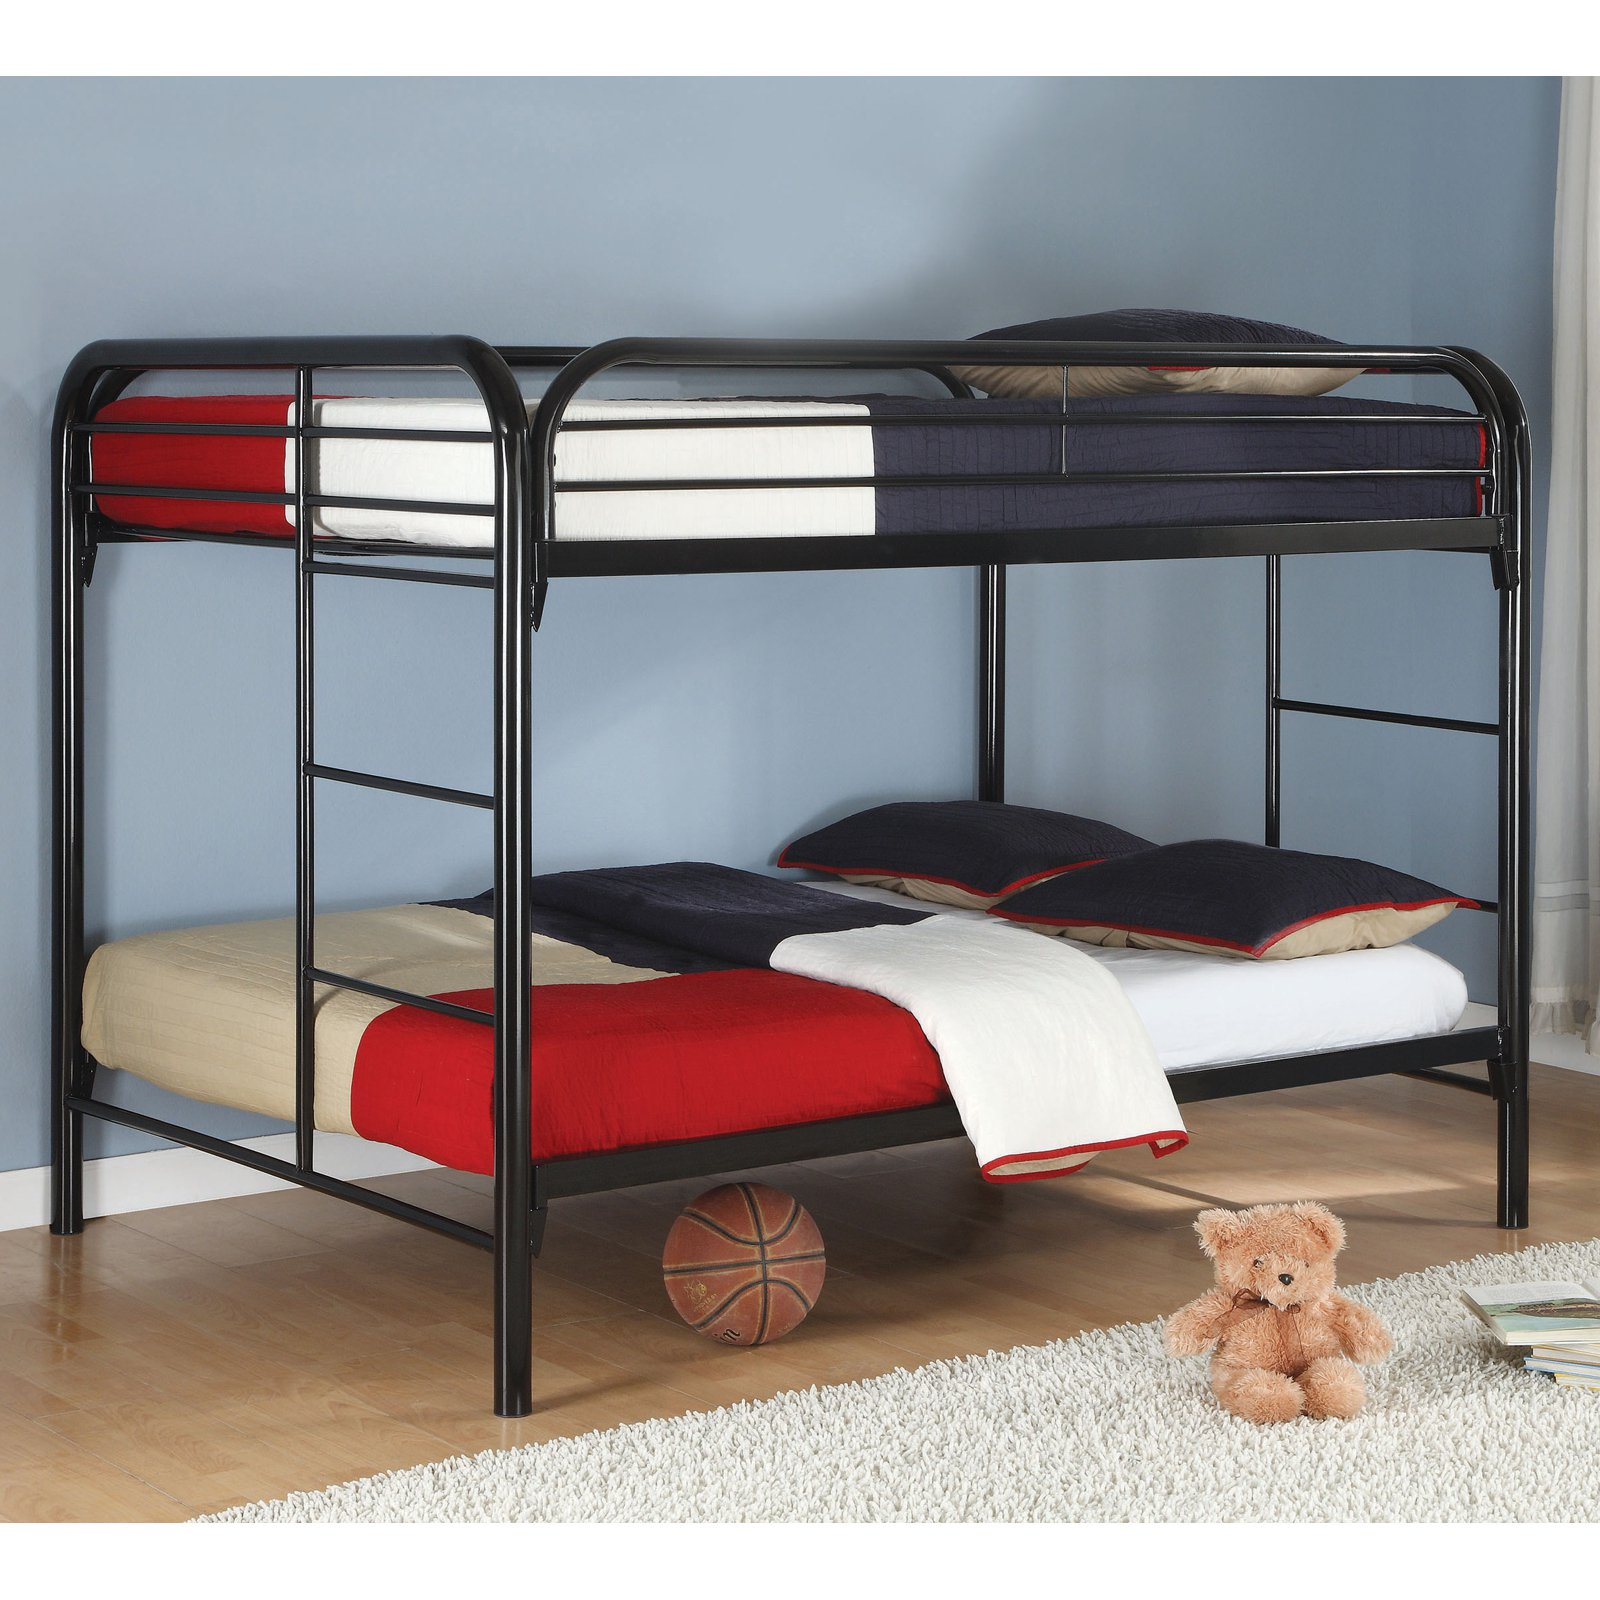 Coaster Furniture Full Over Full Metal Bunk Bed, Black by Coaster Company